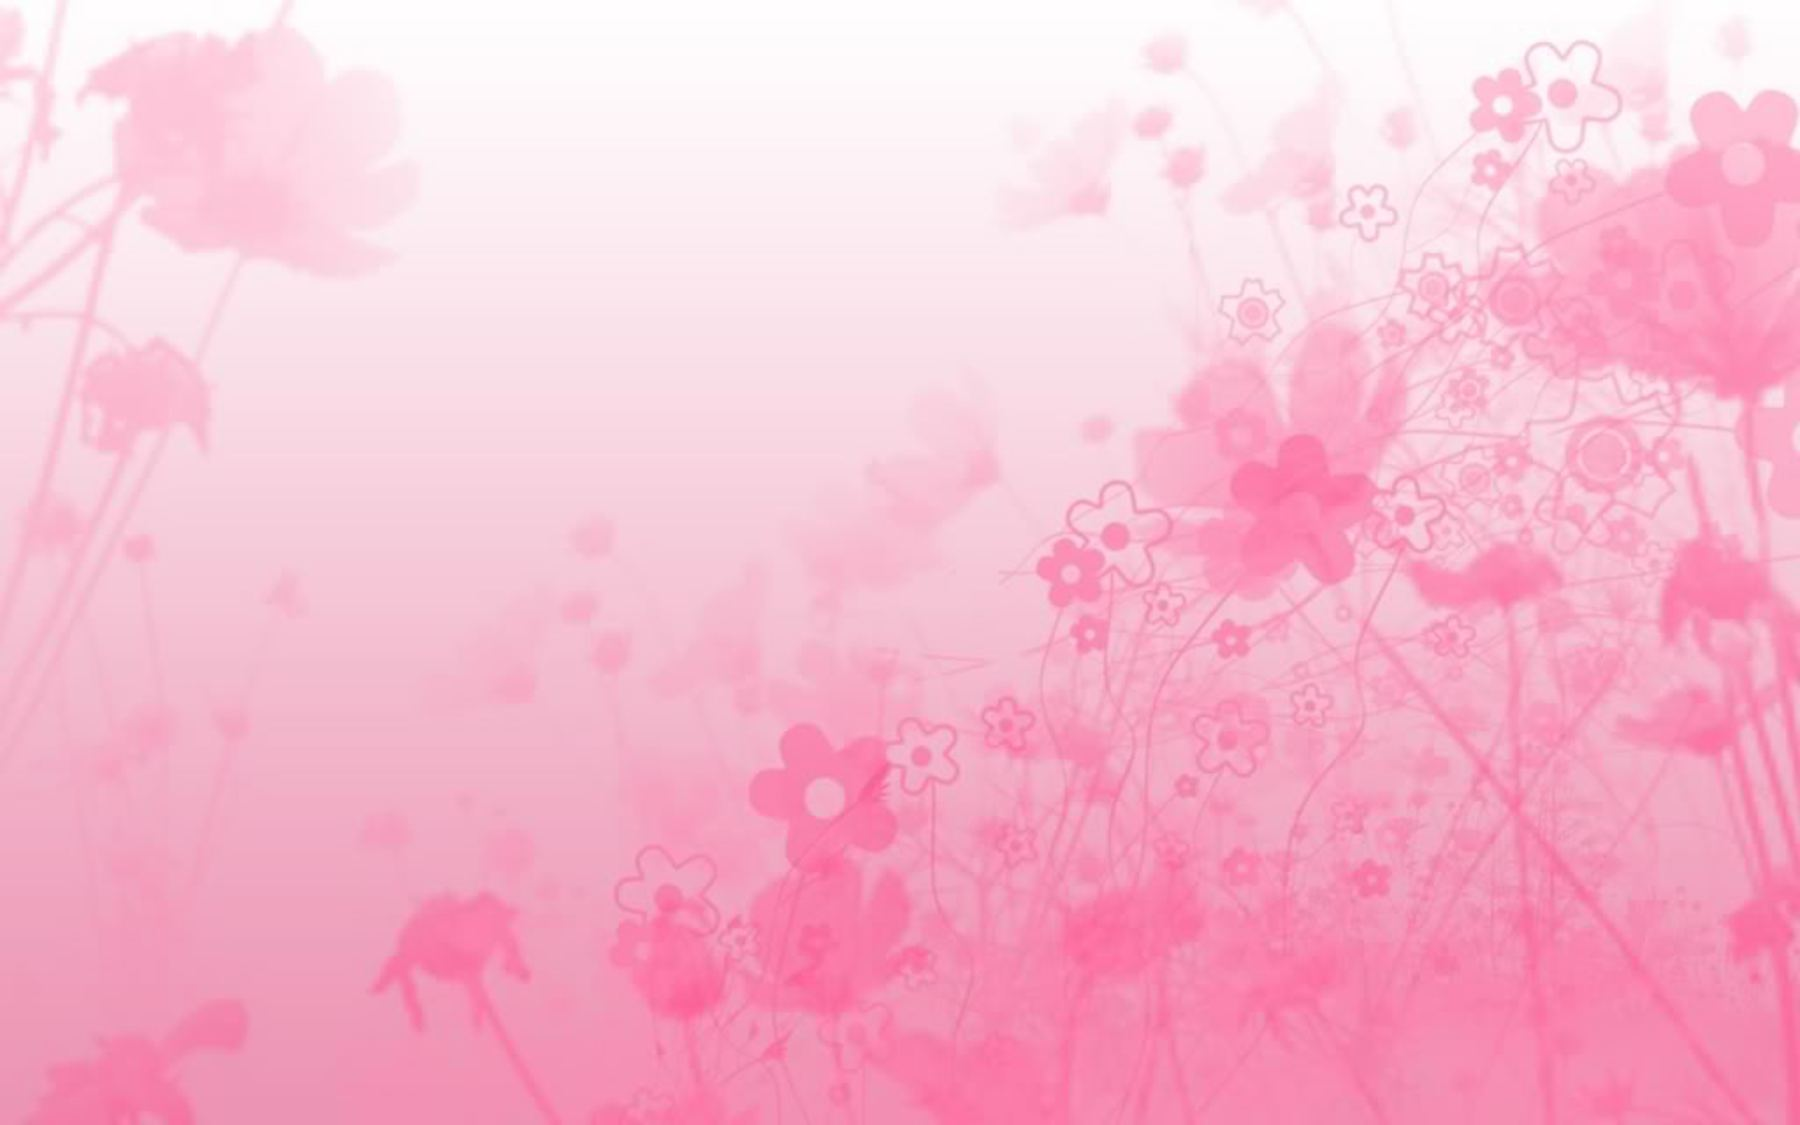 Free wallpaper pink flowers 1800x1125 mightylinksfo